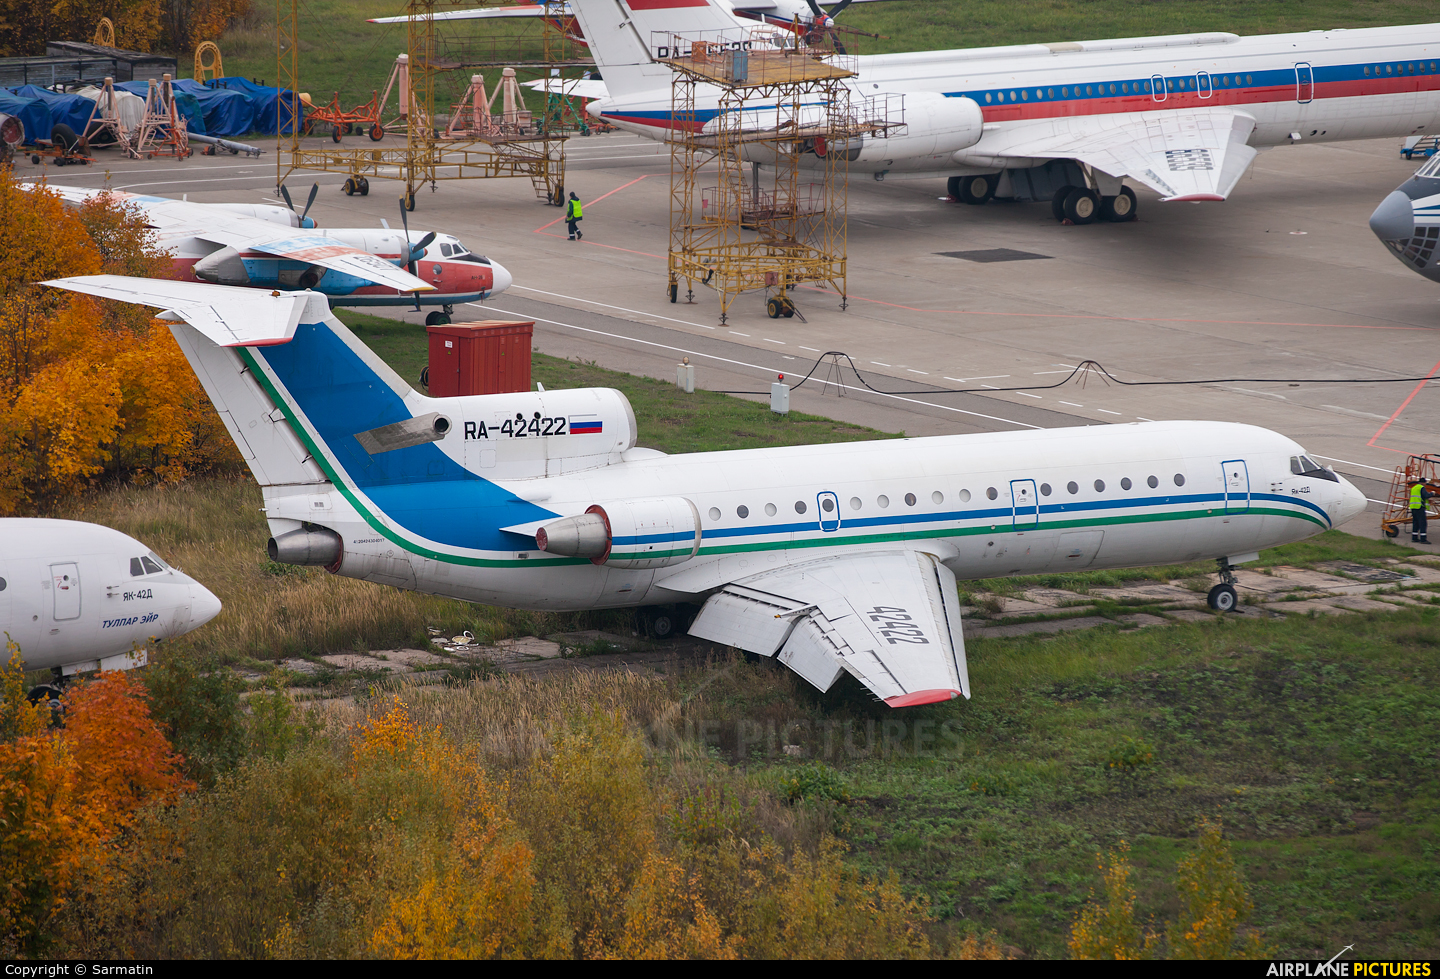 Volga Avia Express RA-42422 aircraft at Kazan